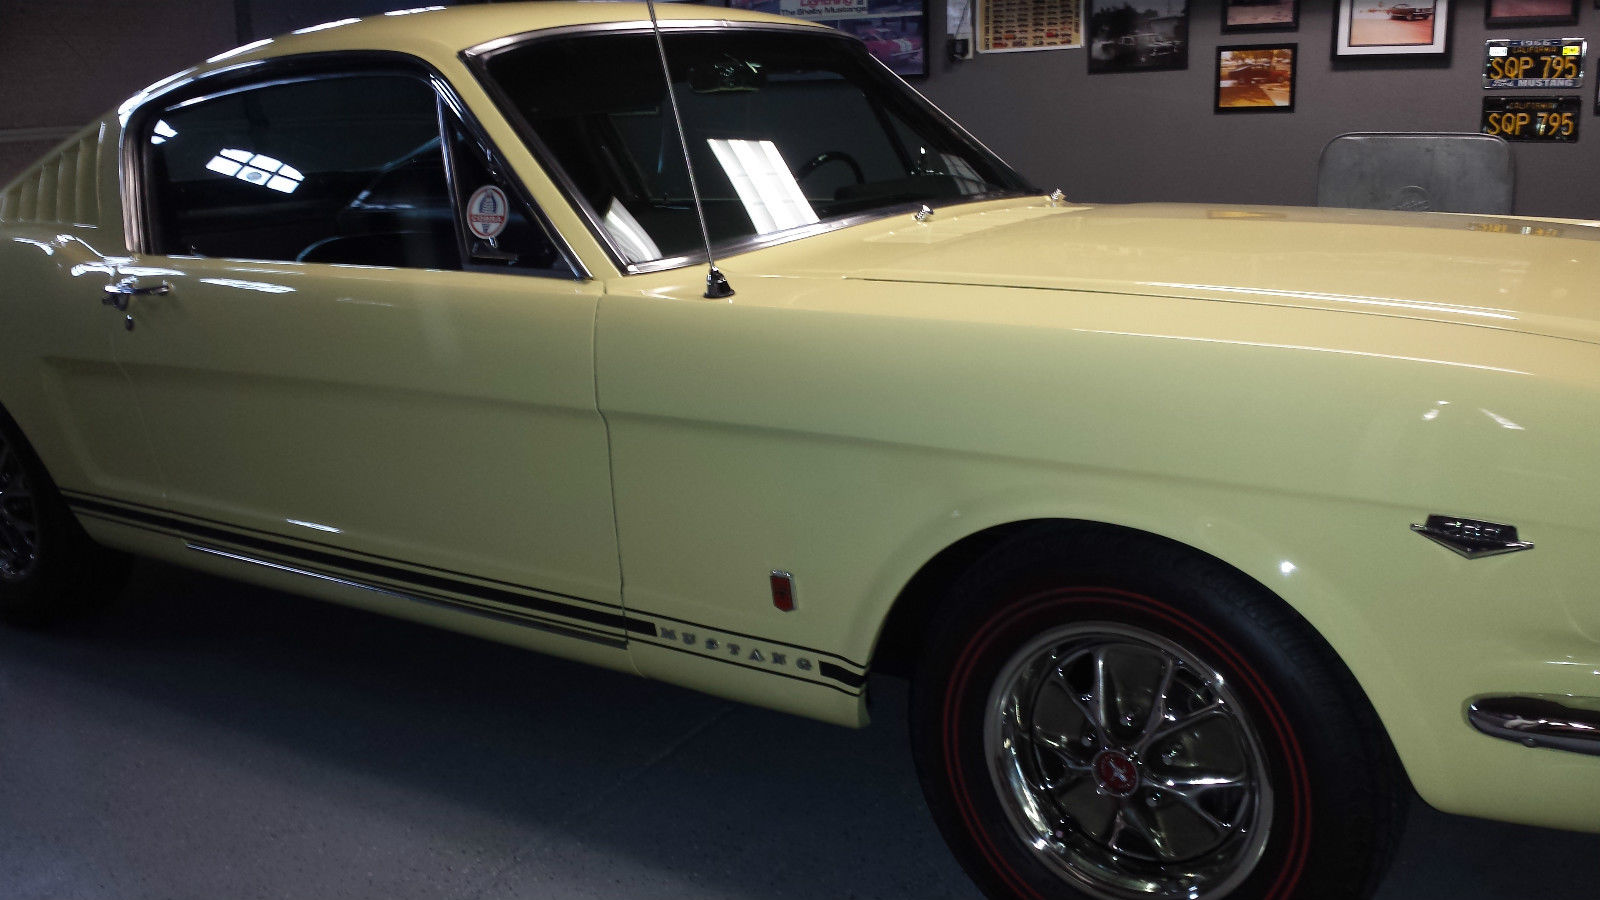 1966 ford mustang k code gt fastback for sale in fresno california united states. Black Bedroom Furniture Sets. Home Design Ideas